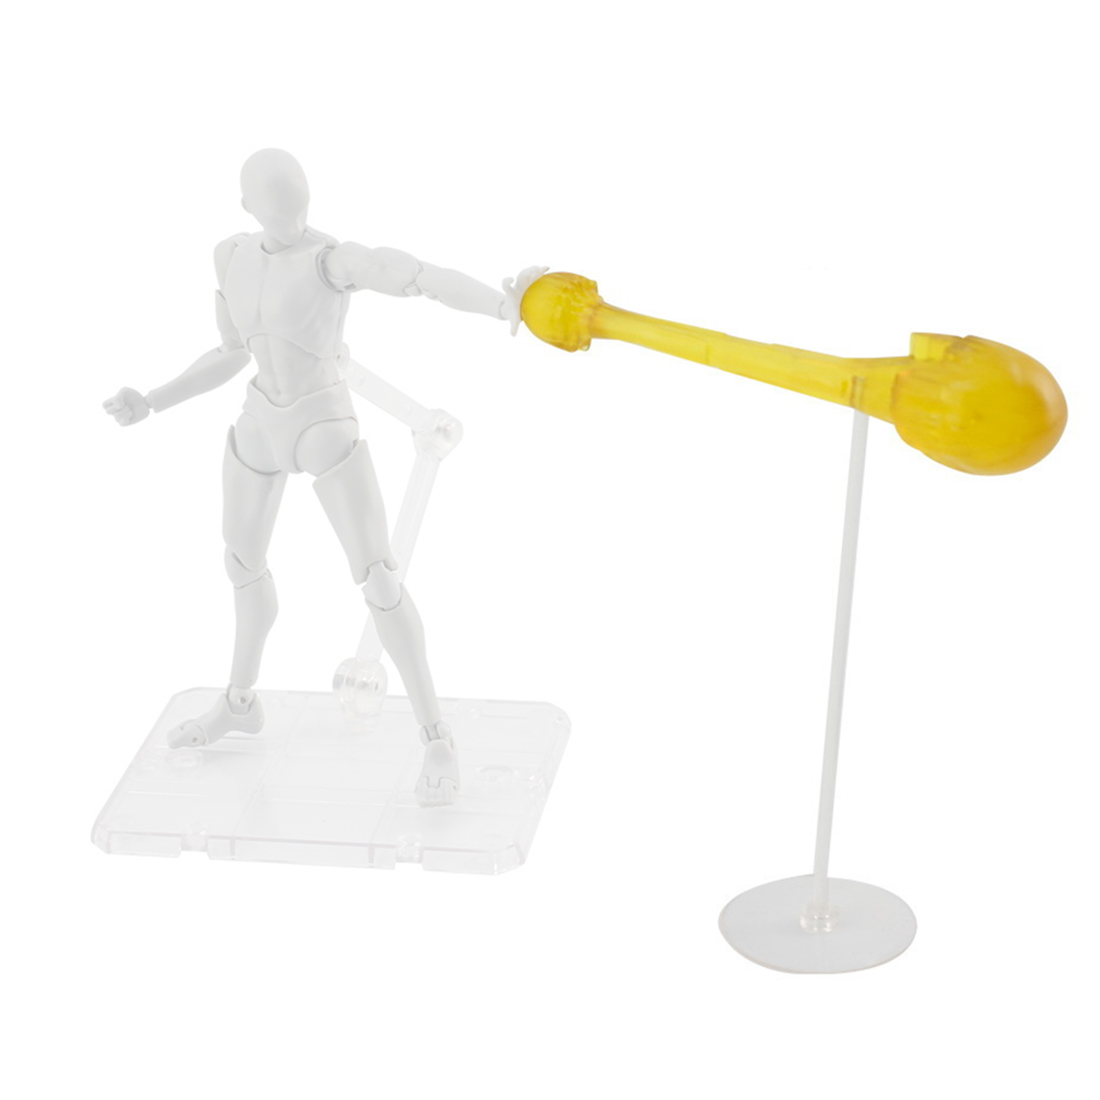 Shock Wave Decoration Solid Special Effects With Holder For Model - Transparent/Purple/Blue/Yellow